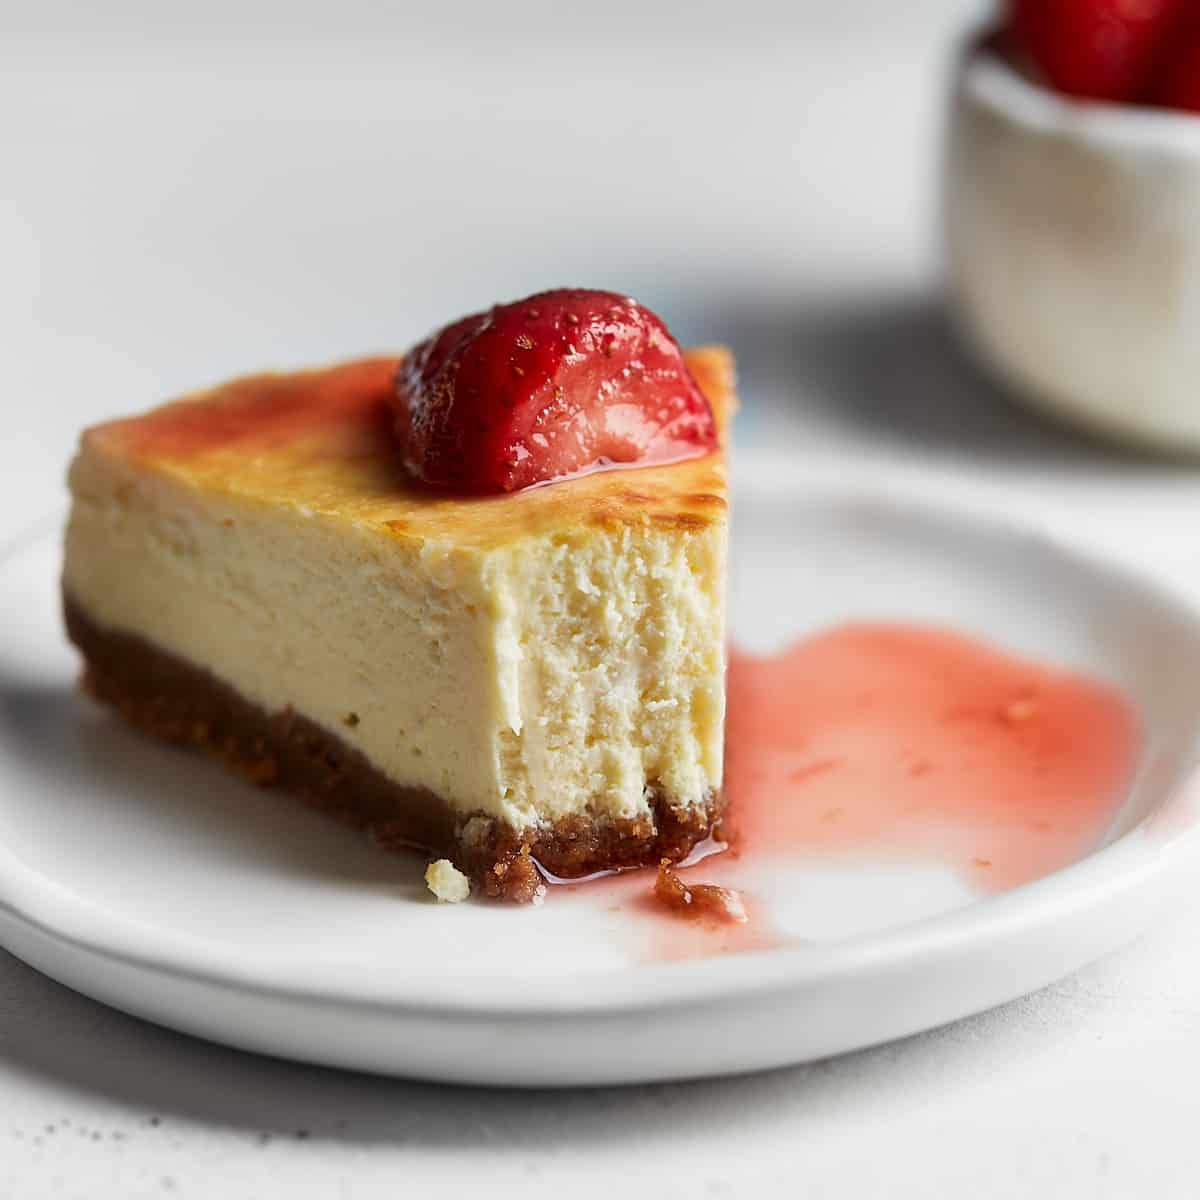 A slice of cheesecake on a plate with a piece bitten out